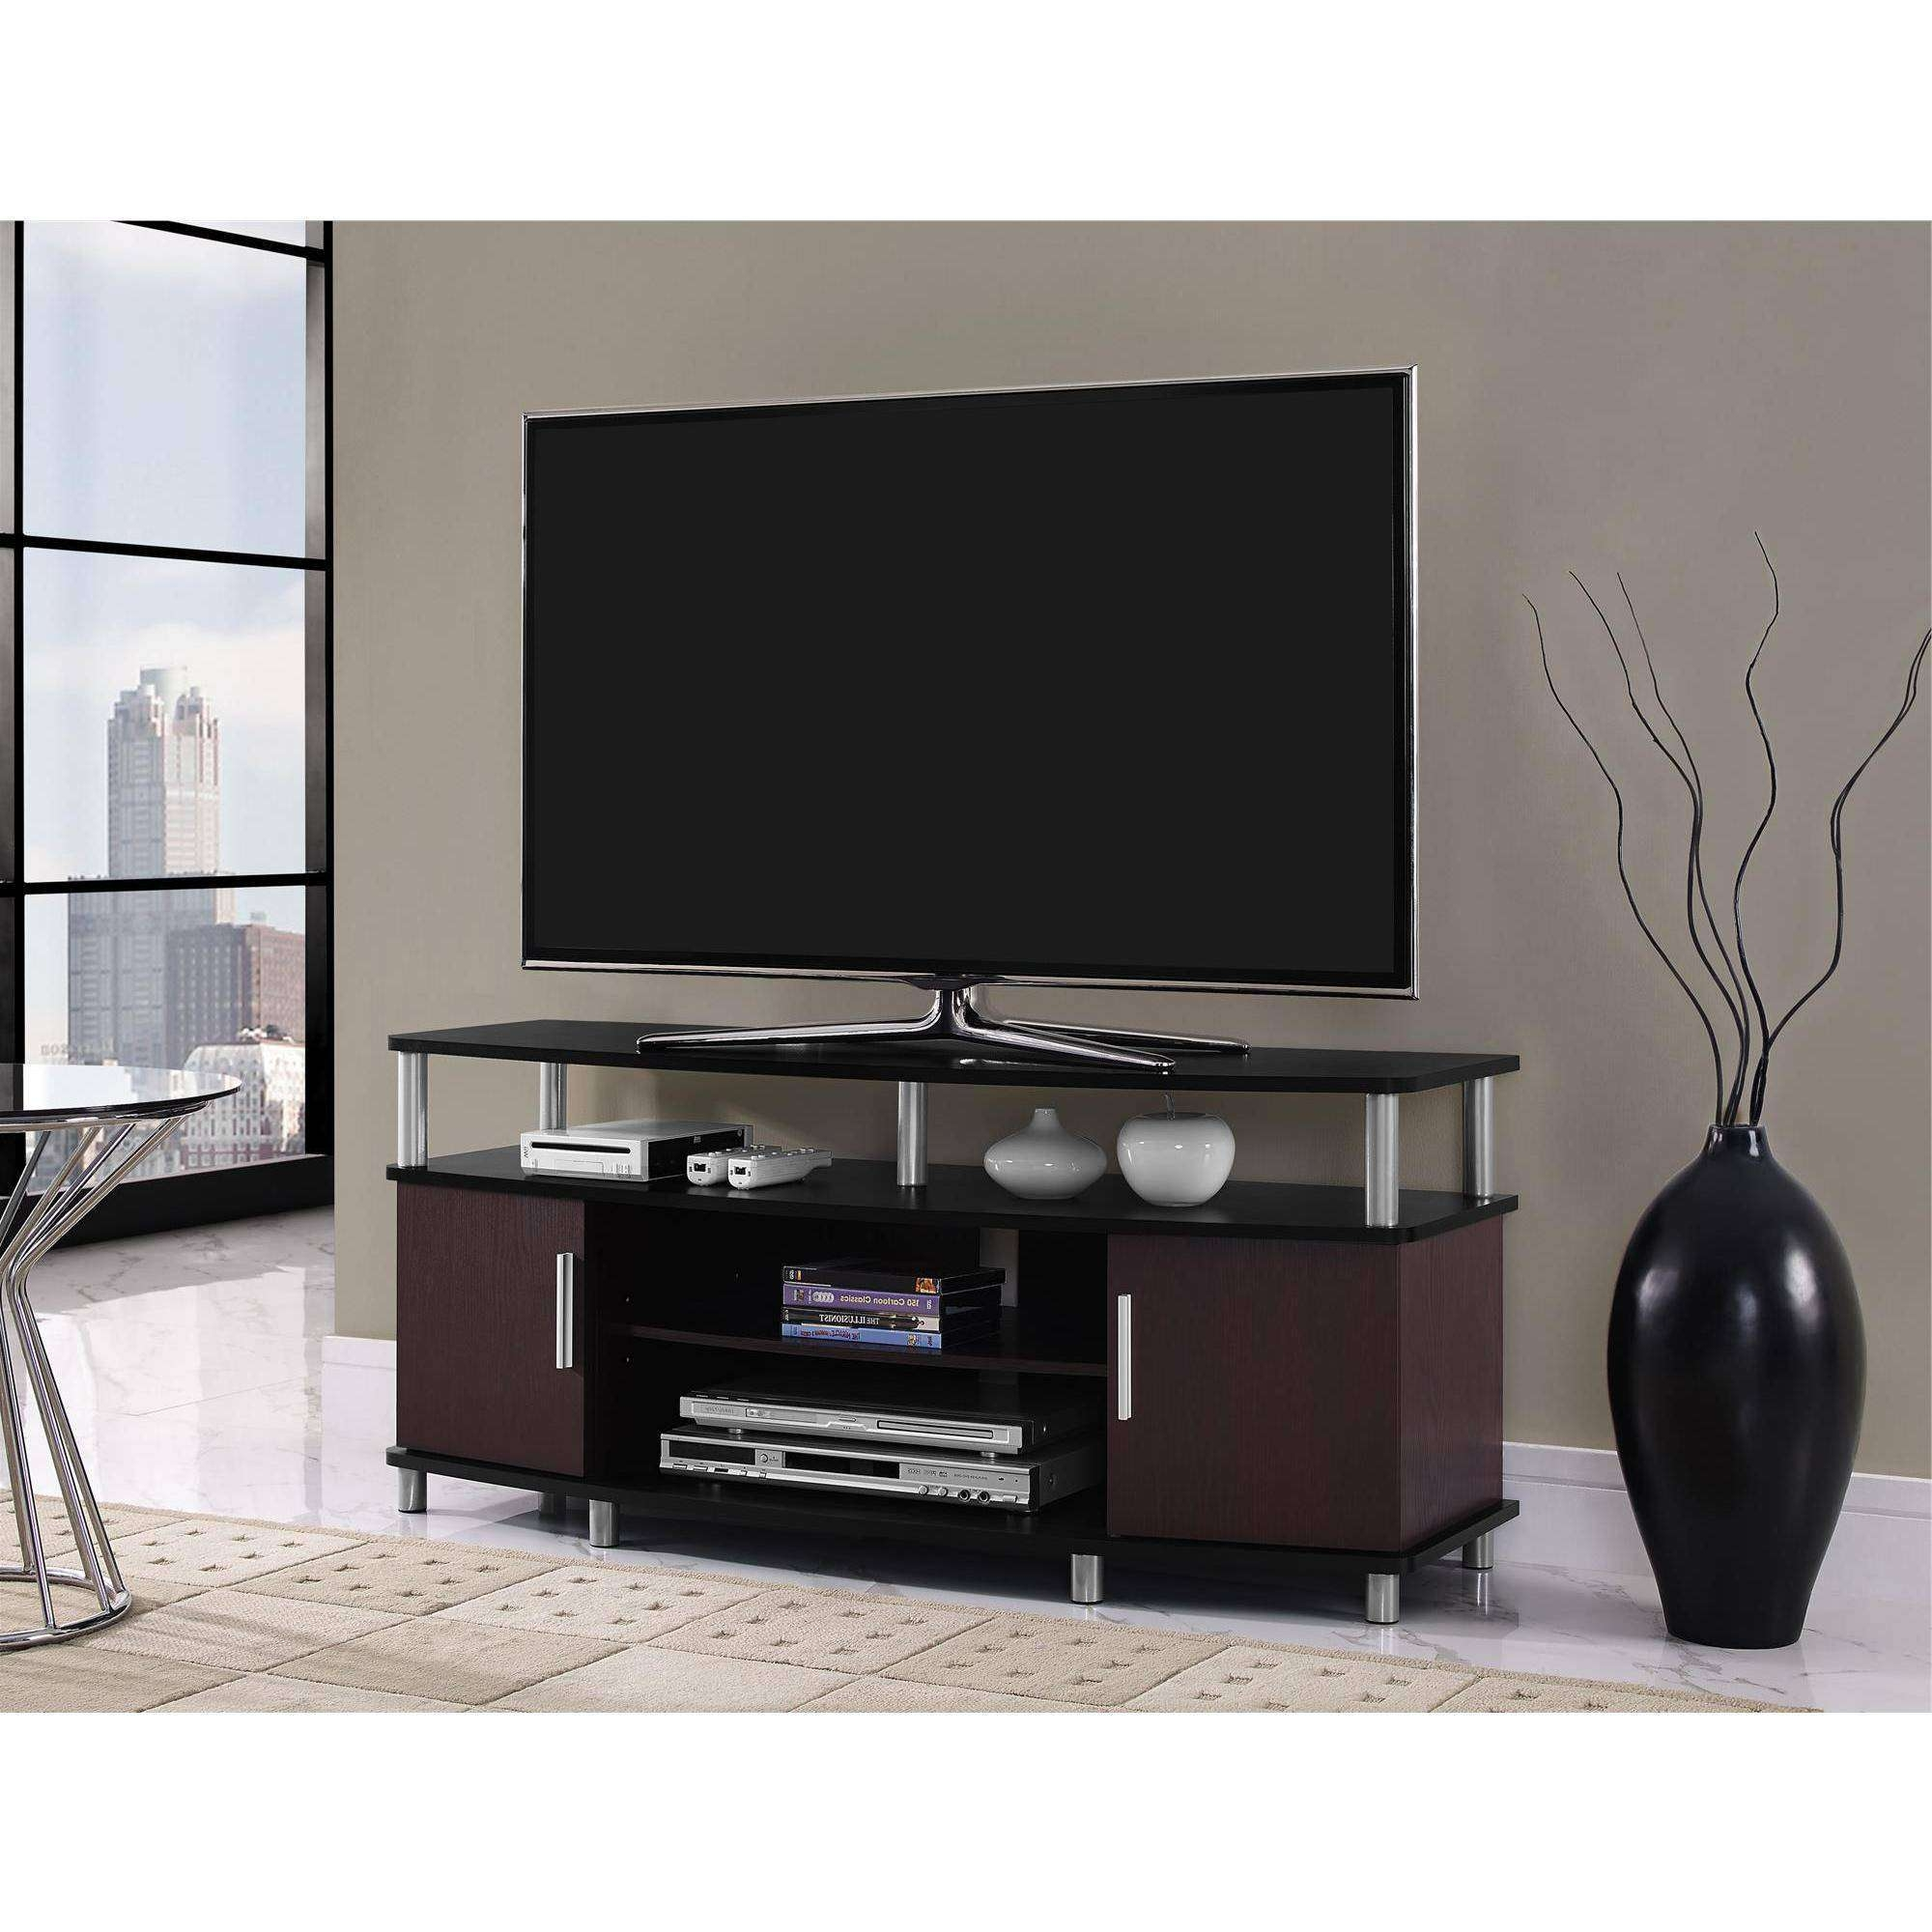 Tv Stands & Entertainment Centers – Walmart For Storage Tv Stands (View 12 of 15)